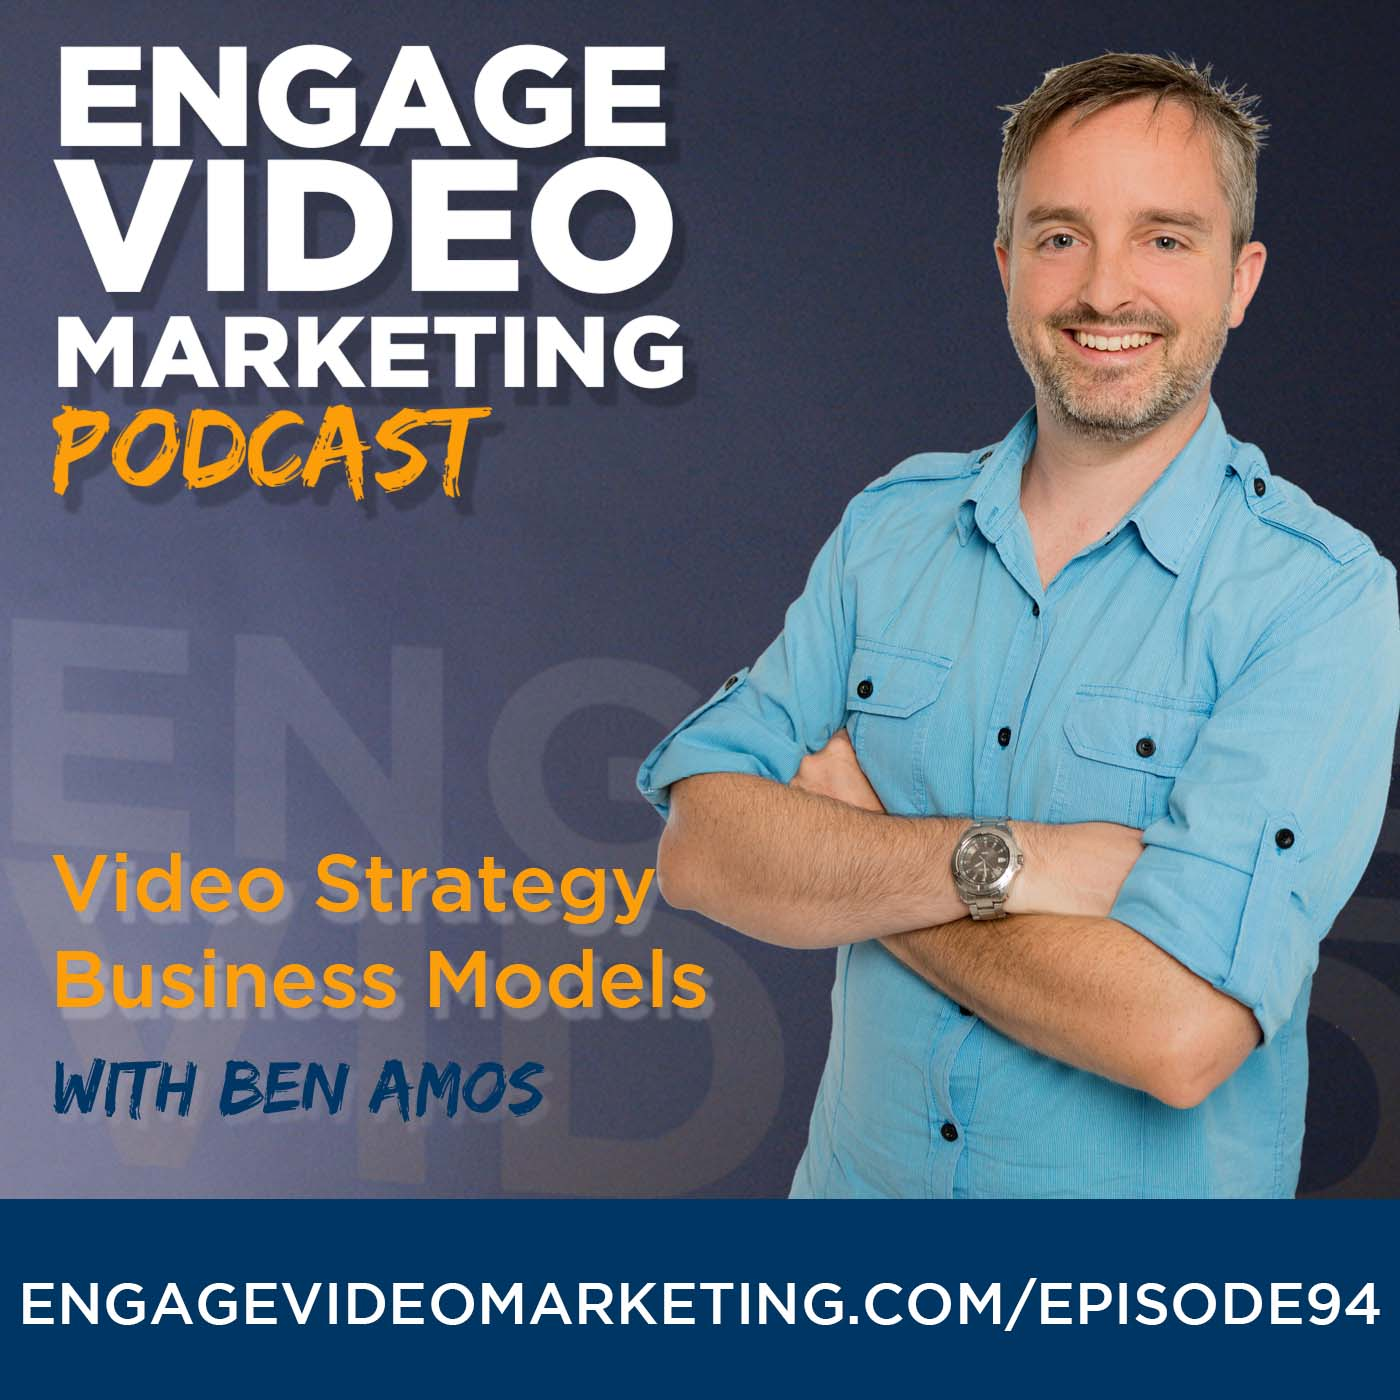 Video Strategy Business Models